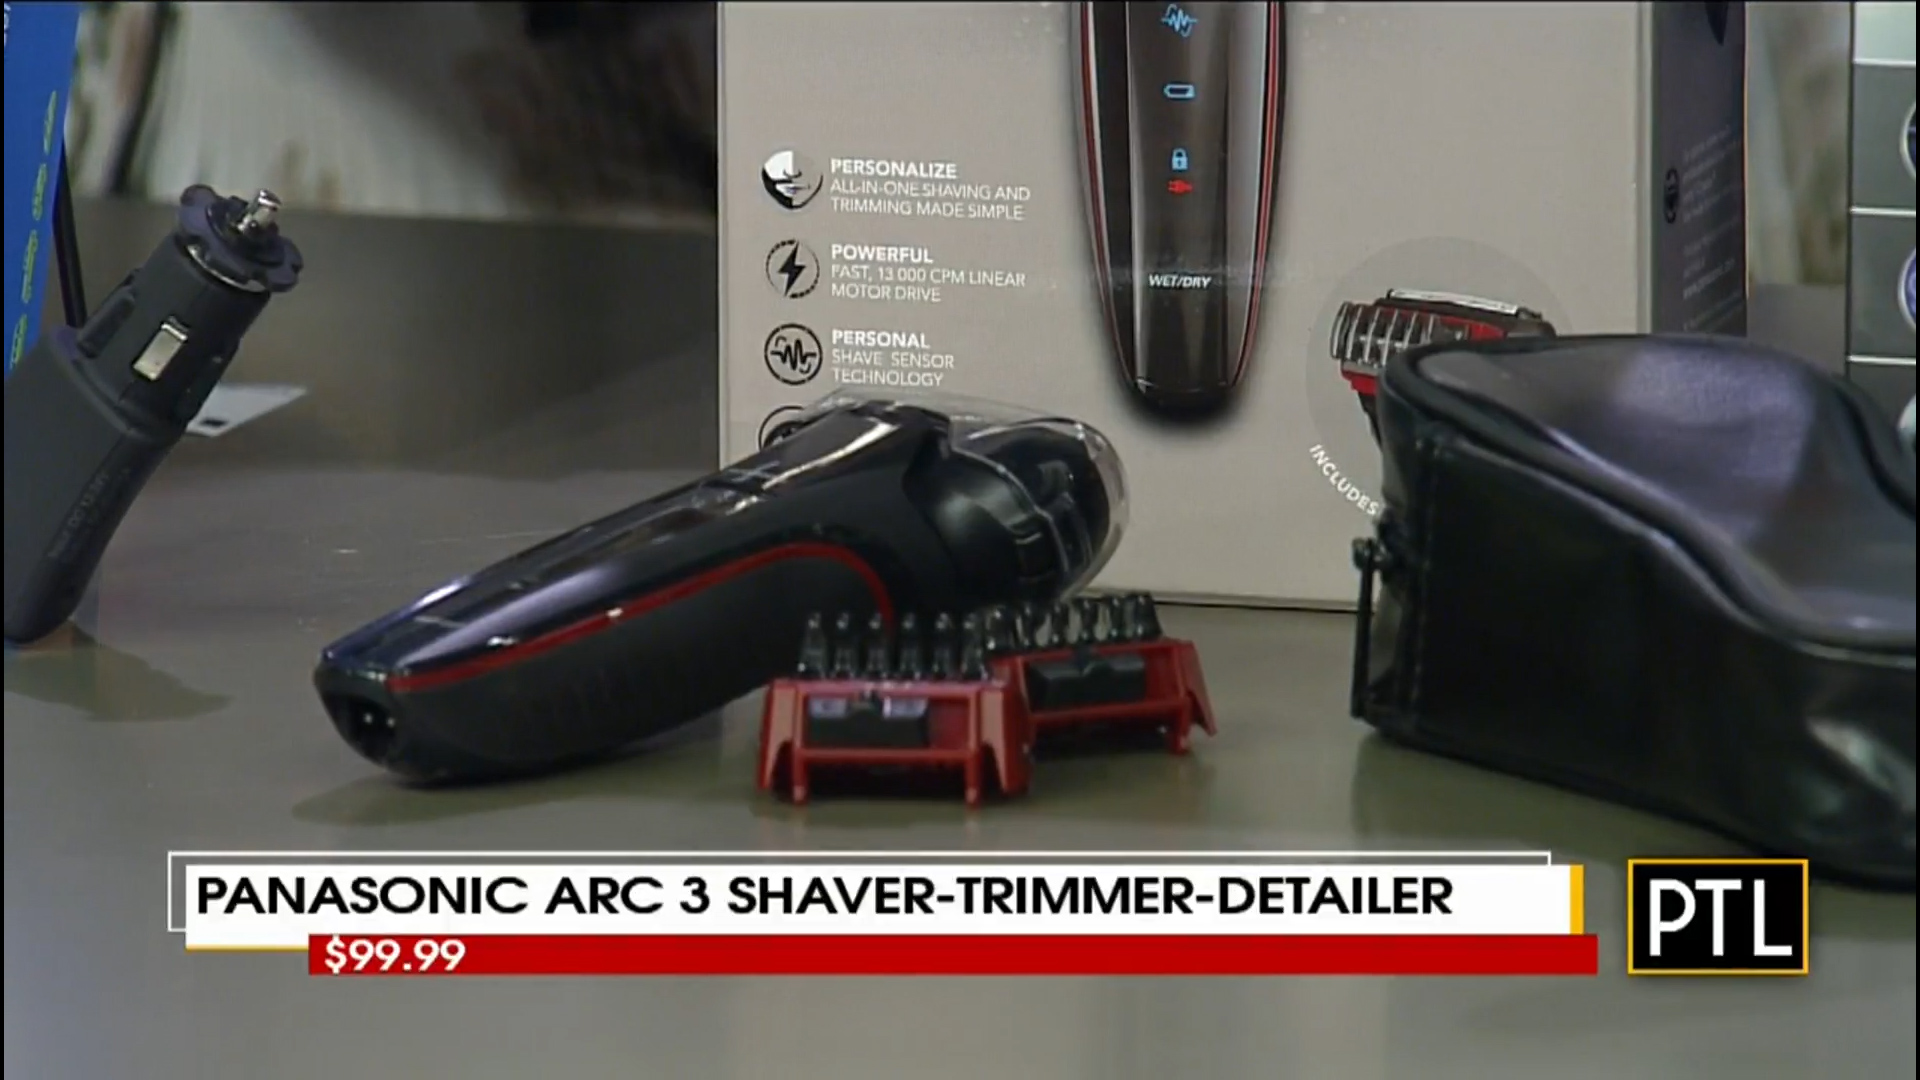 PANASONIC ARC 3 SHAVER-TRIMMER-& DETAILER - $99.99Shop Now